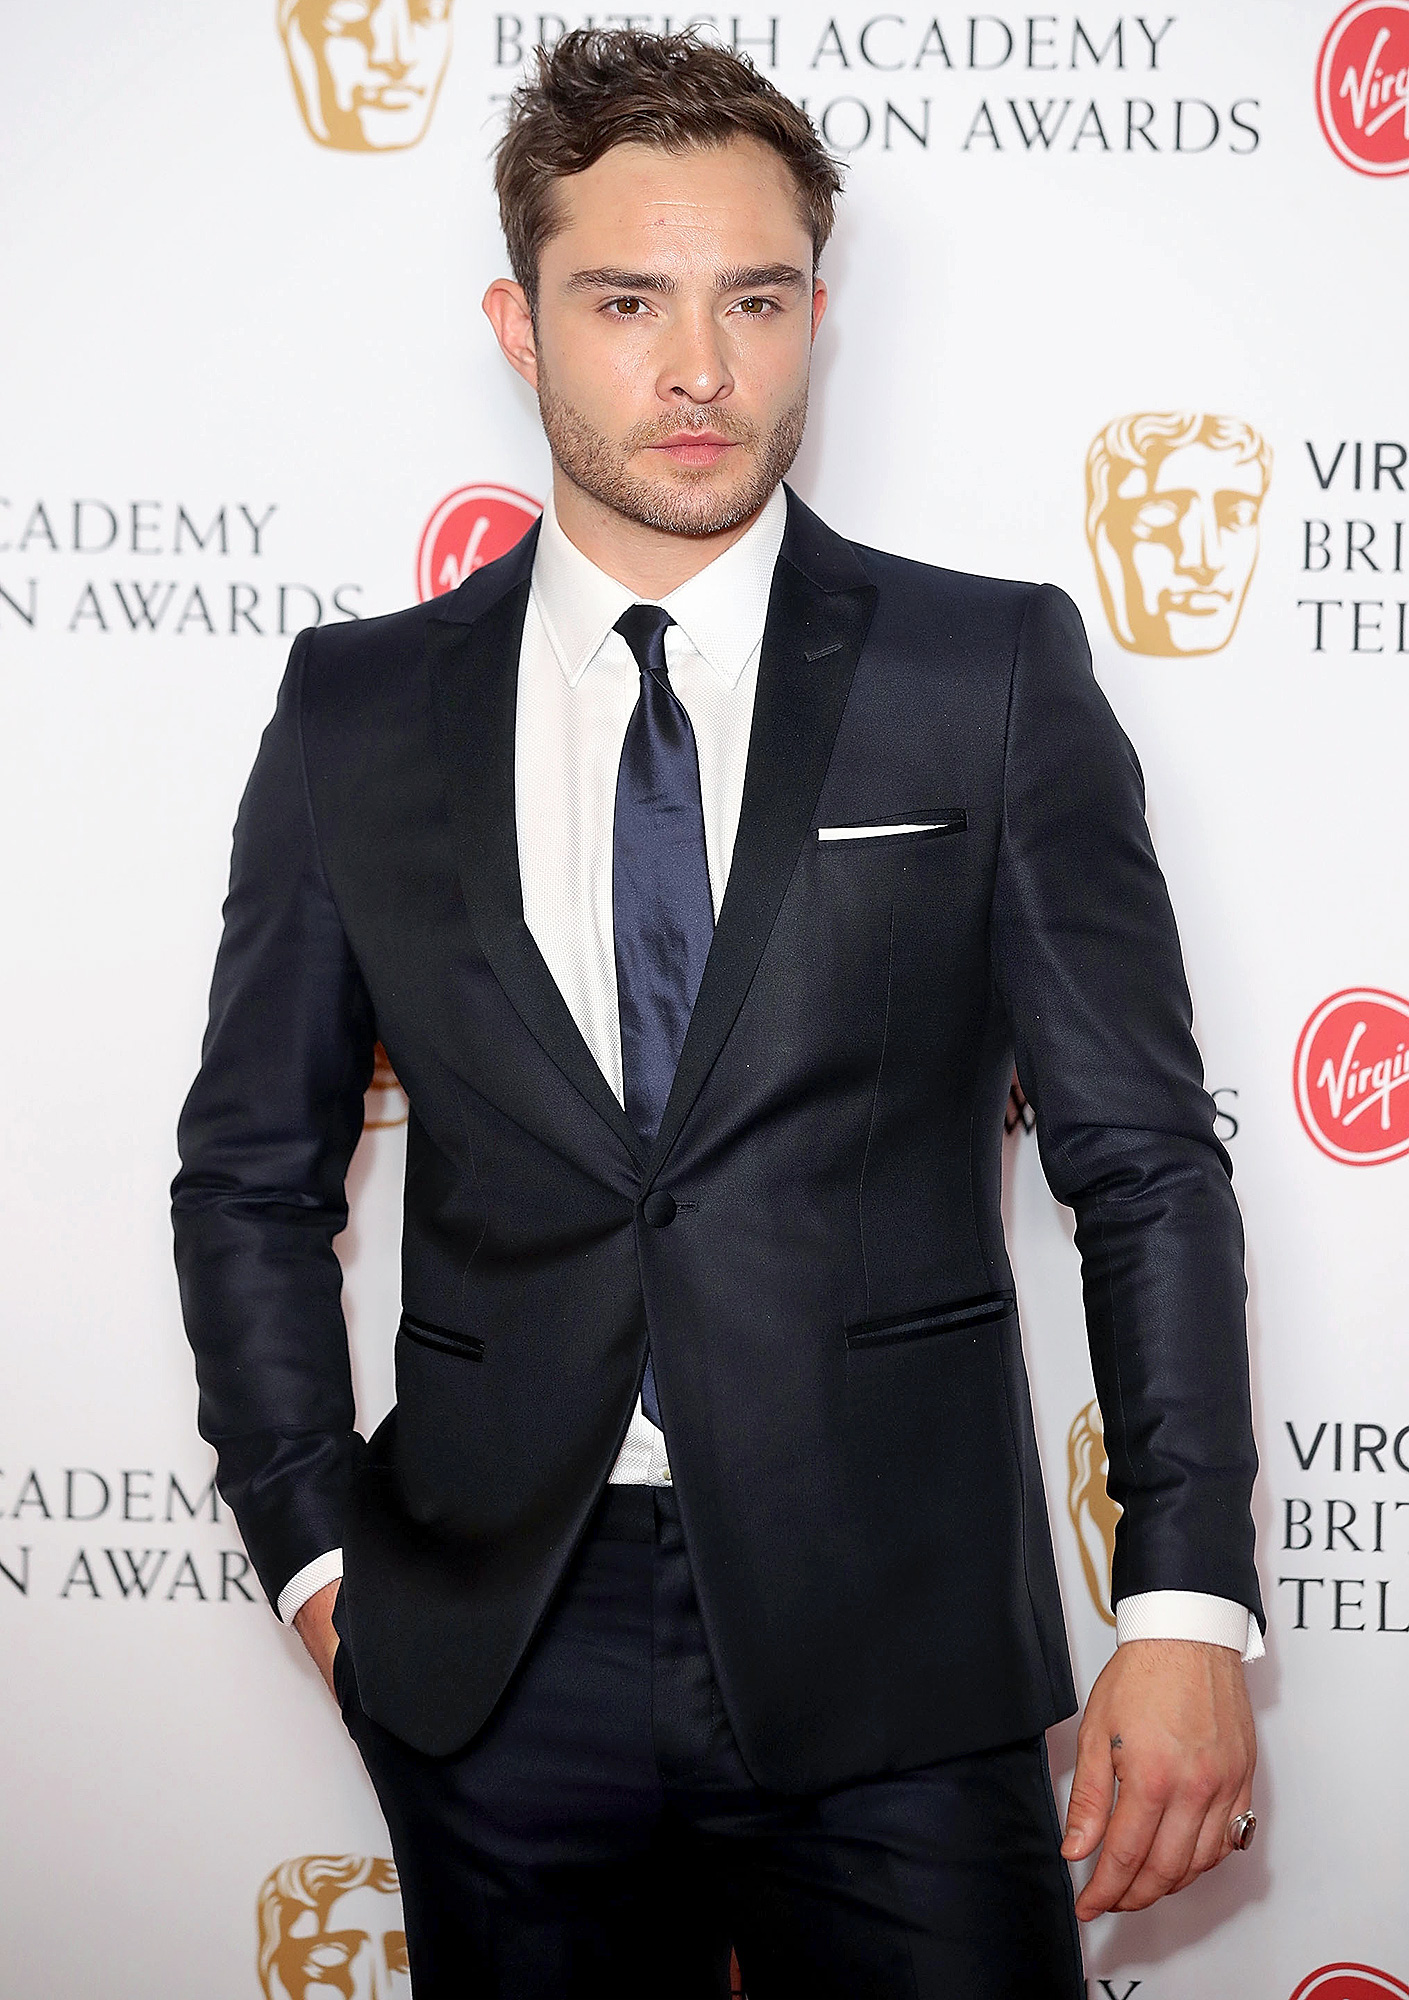 Discussion on this topic: Geneva Mitchell, ed-westwick-born-1987/